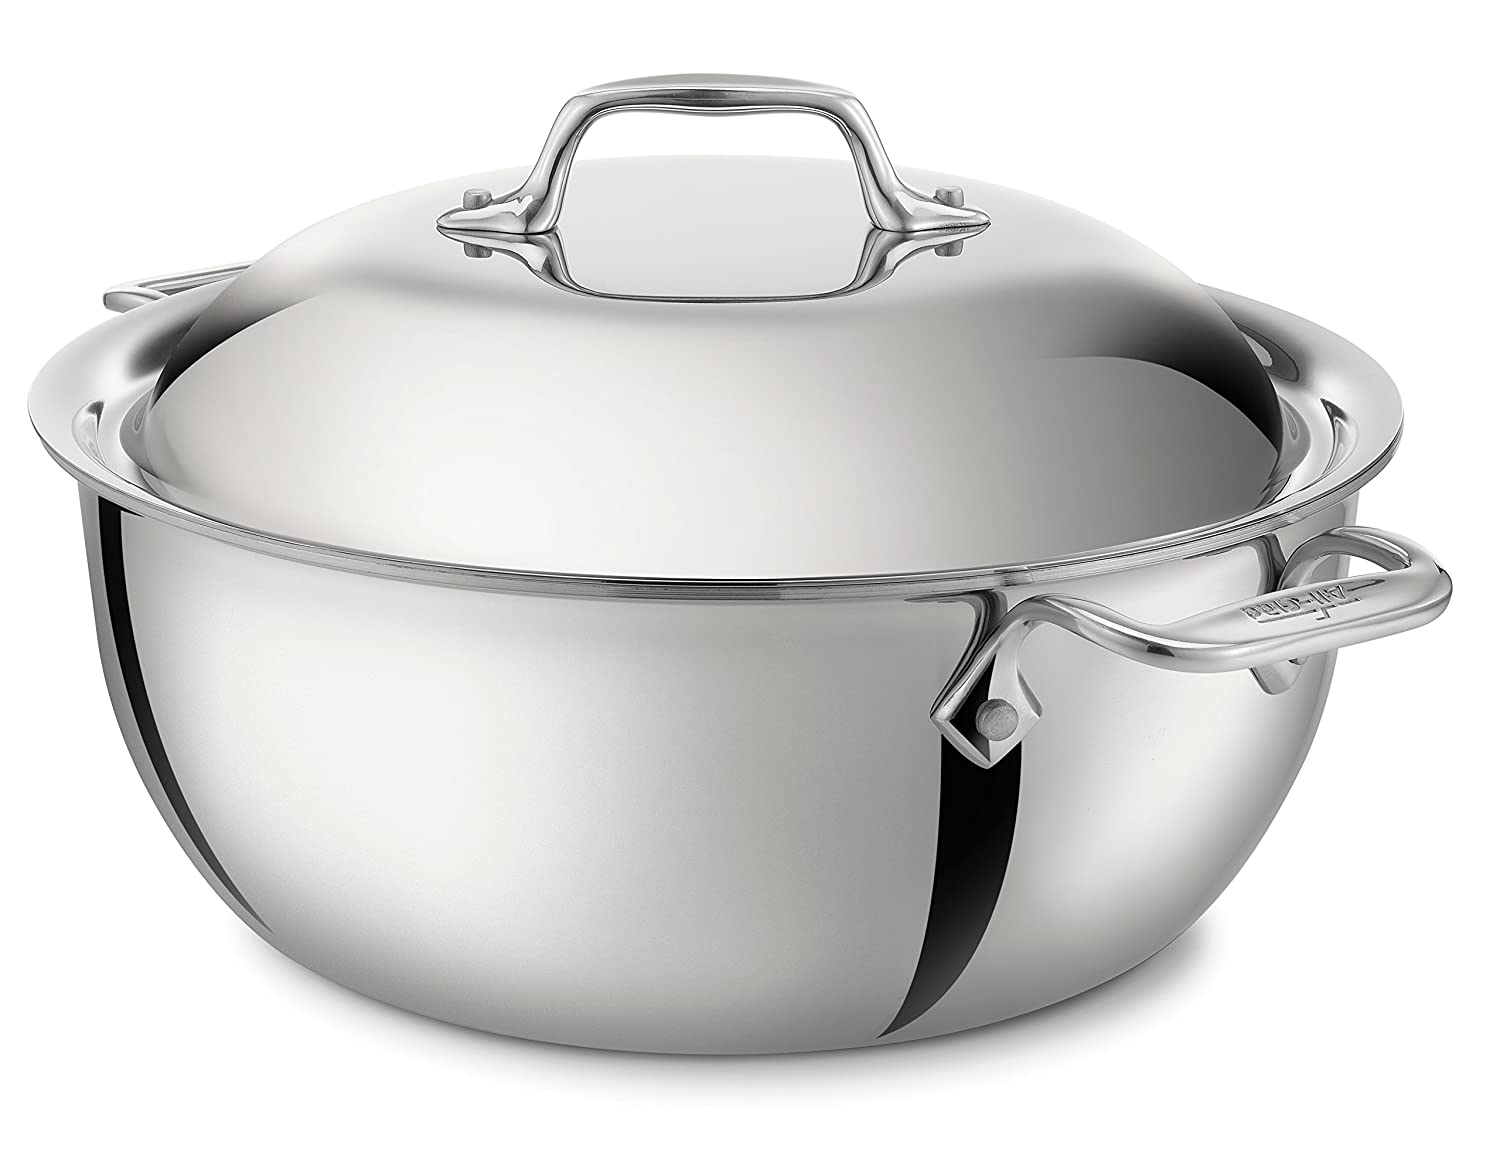 Amazon.com: All-Clad 4500 Stainless Steel Tri-Ply Bonded ...